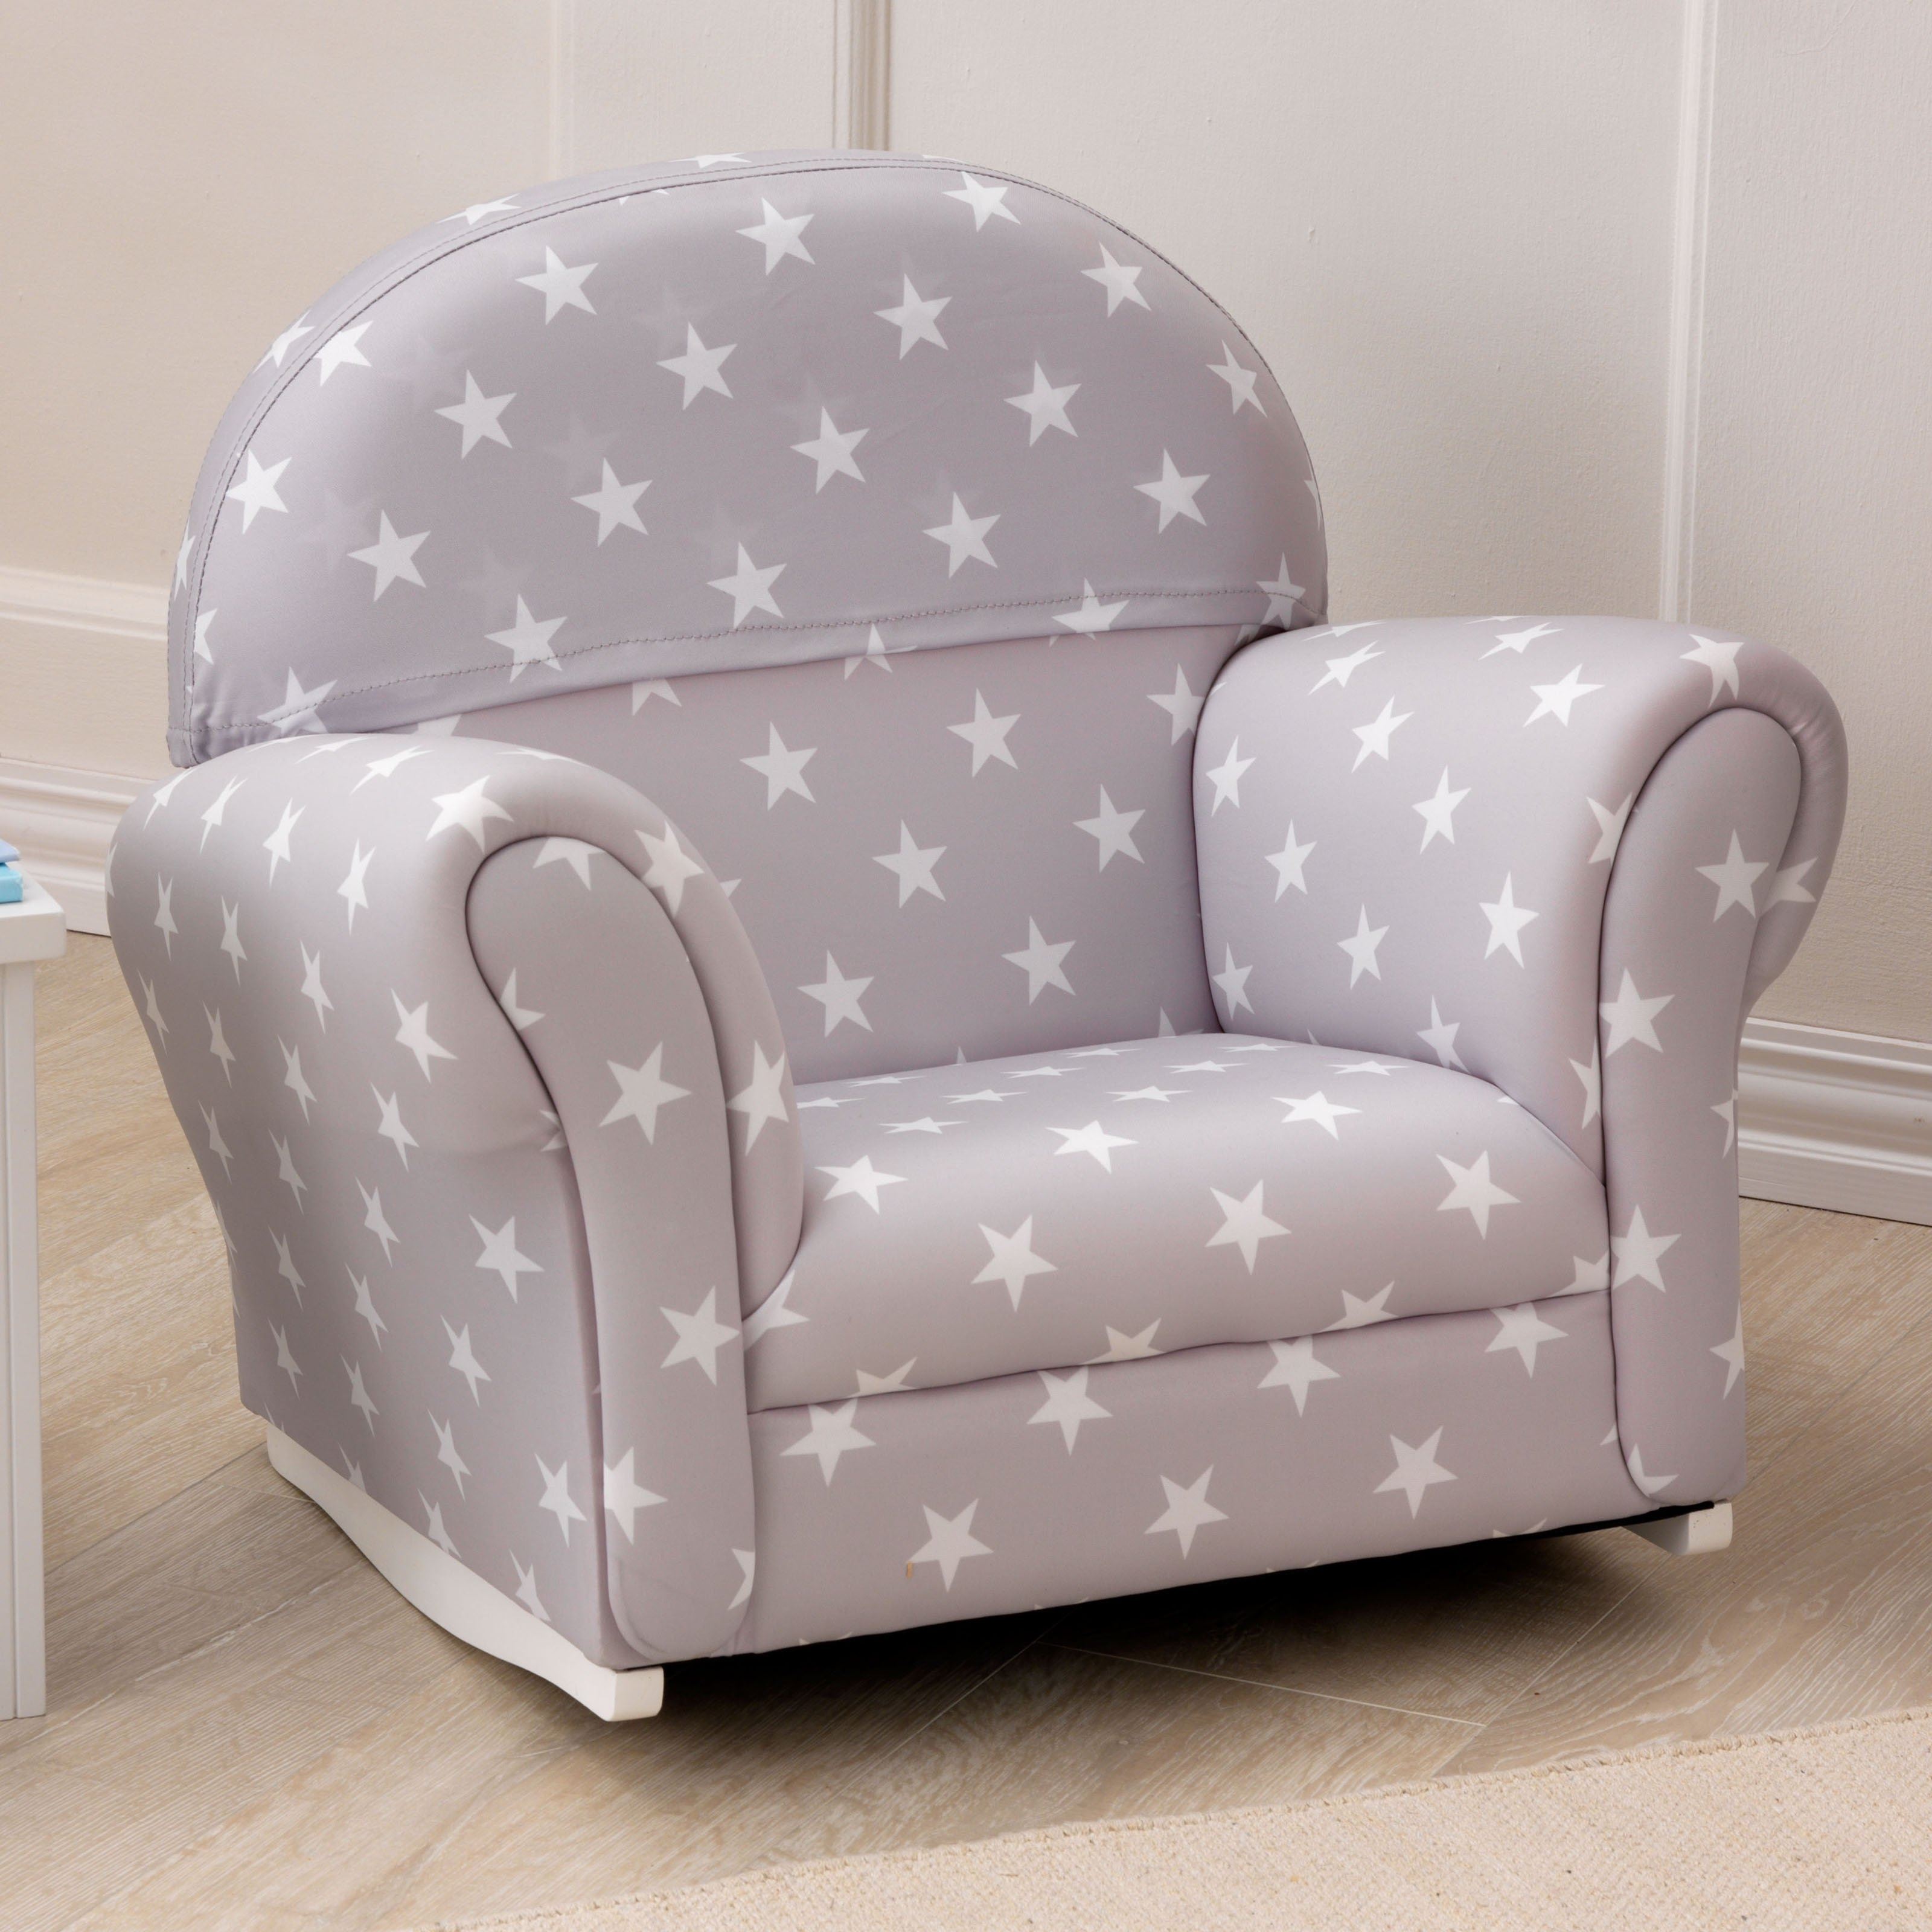 Widely Used Armchair : Ikea Kids Stool Kids Chairs Ikea Toddler Chair Ikea With Personalized Kids Chairs And Sofas (View 20 of 20)